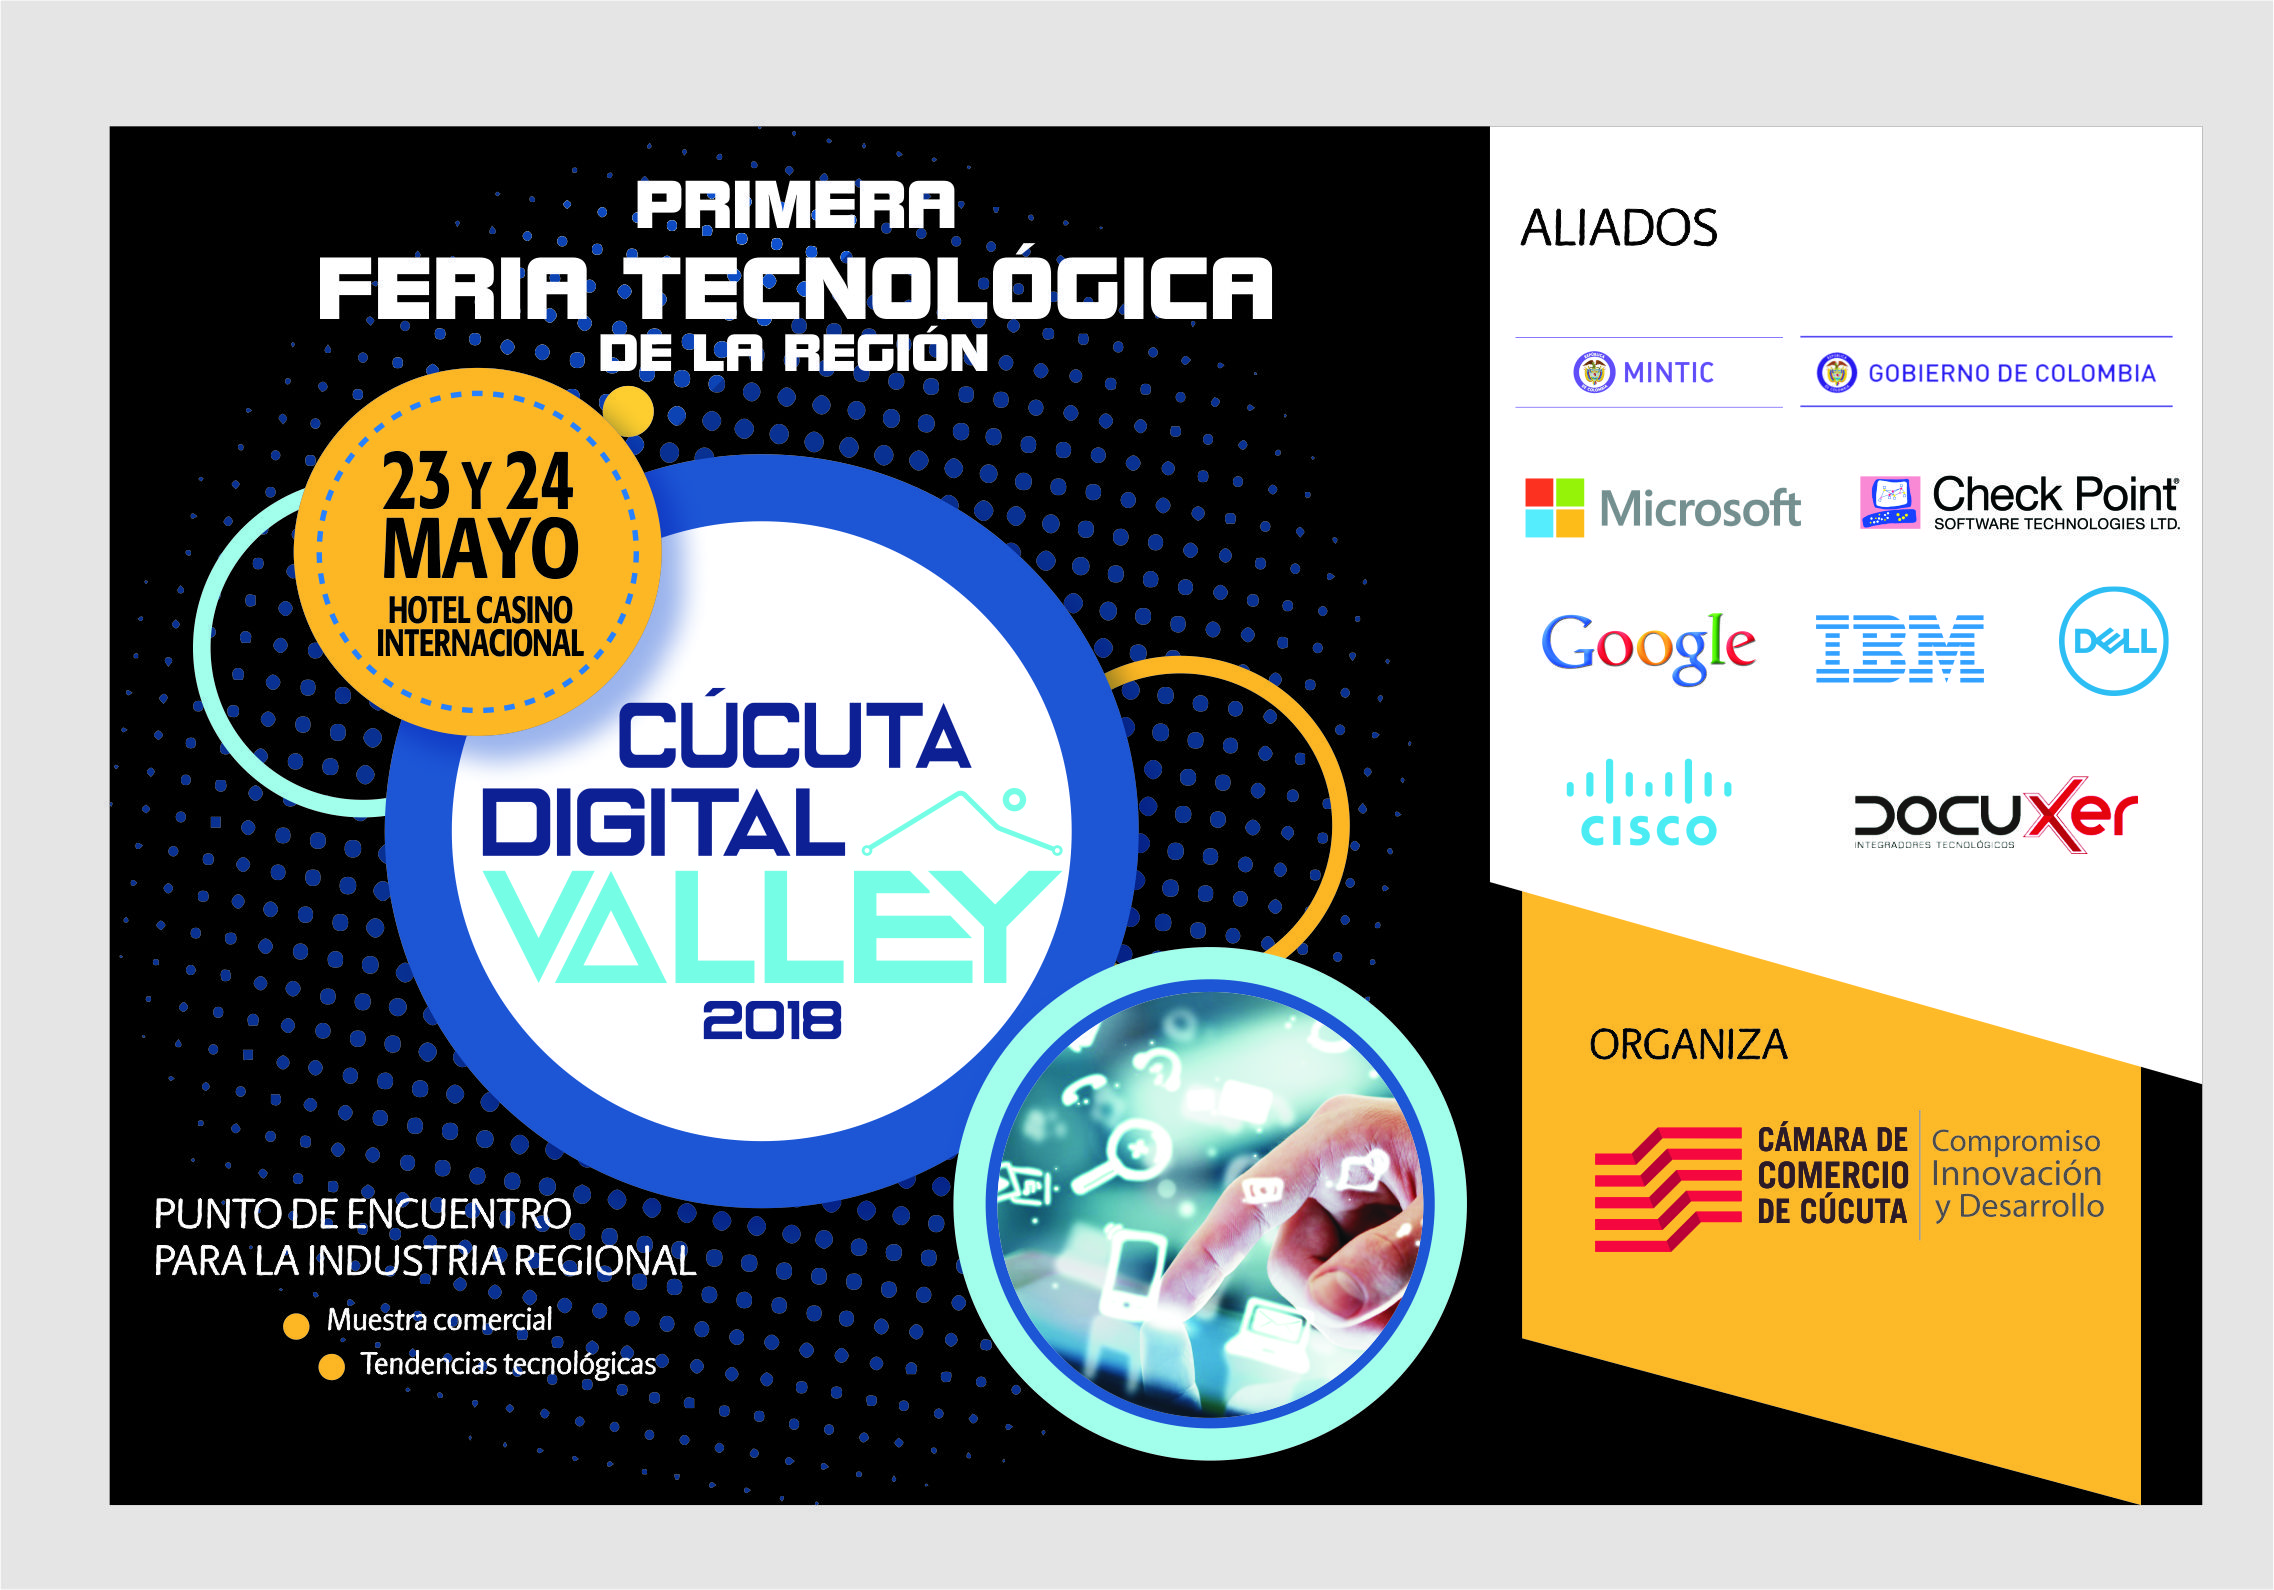 Cúcuta Digital Valley 2018